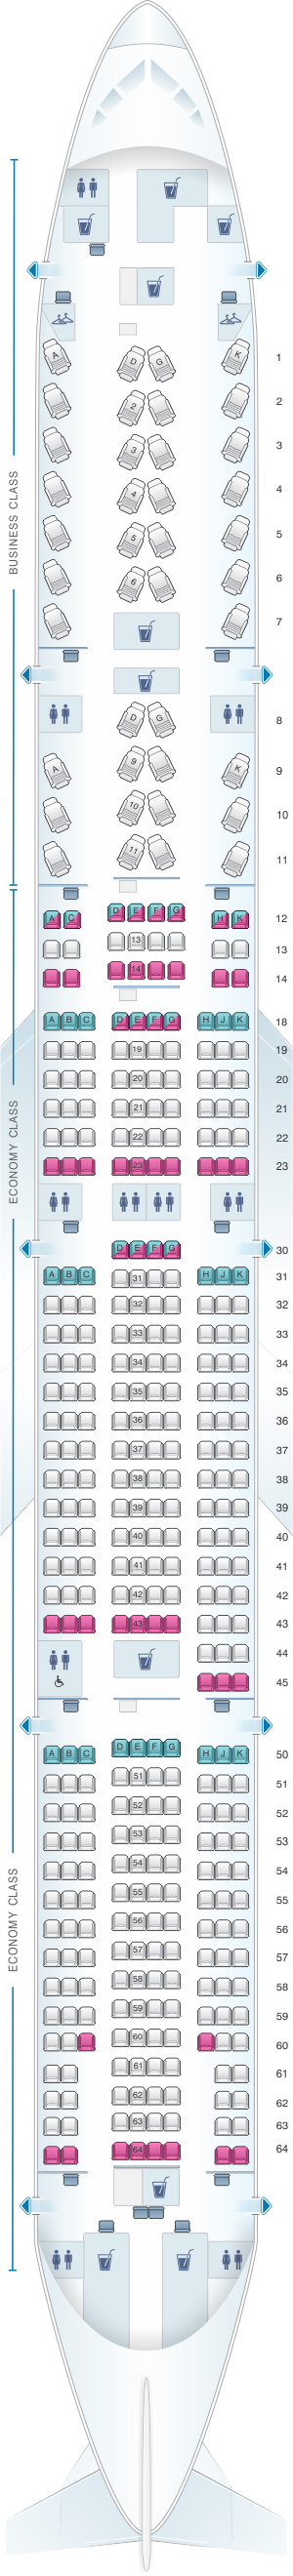 Seat map for Air Canada Boeing B777 300ER (77W) North America Layout 1